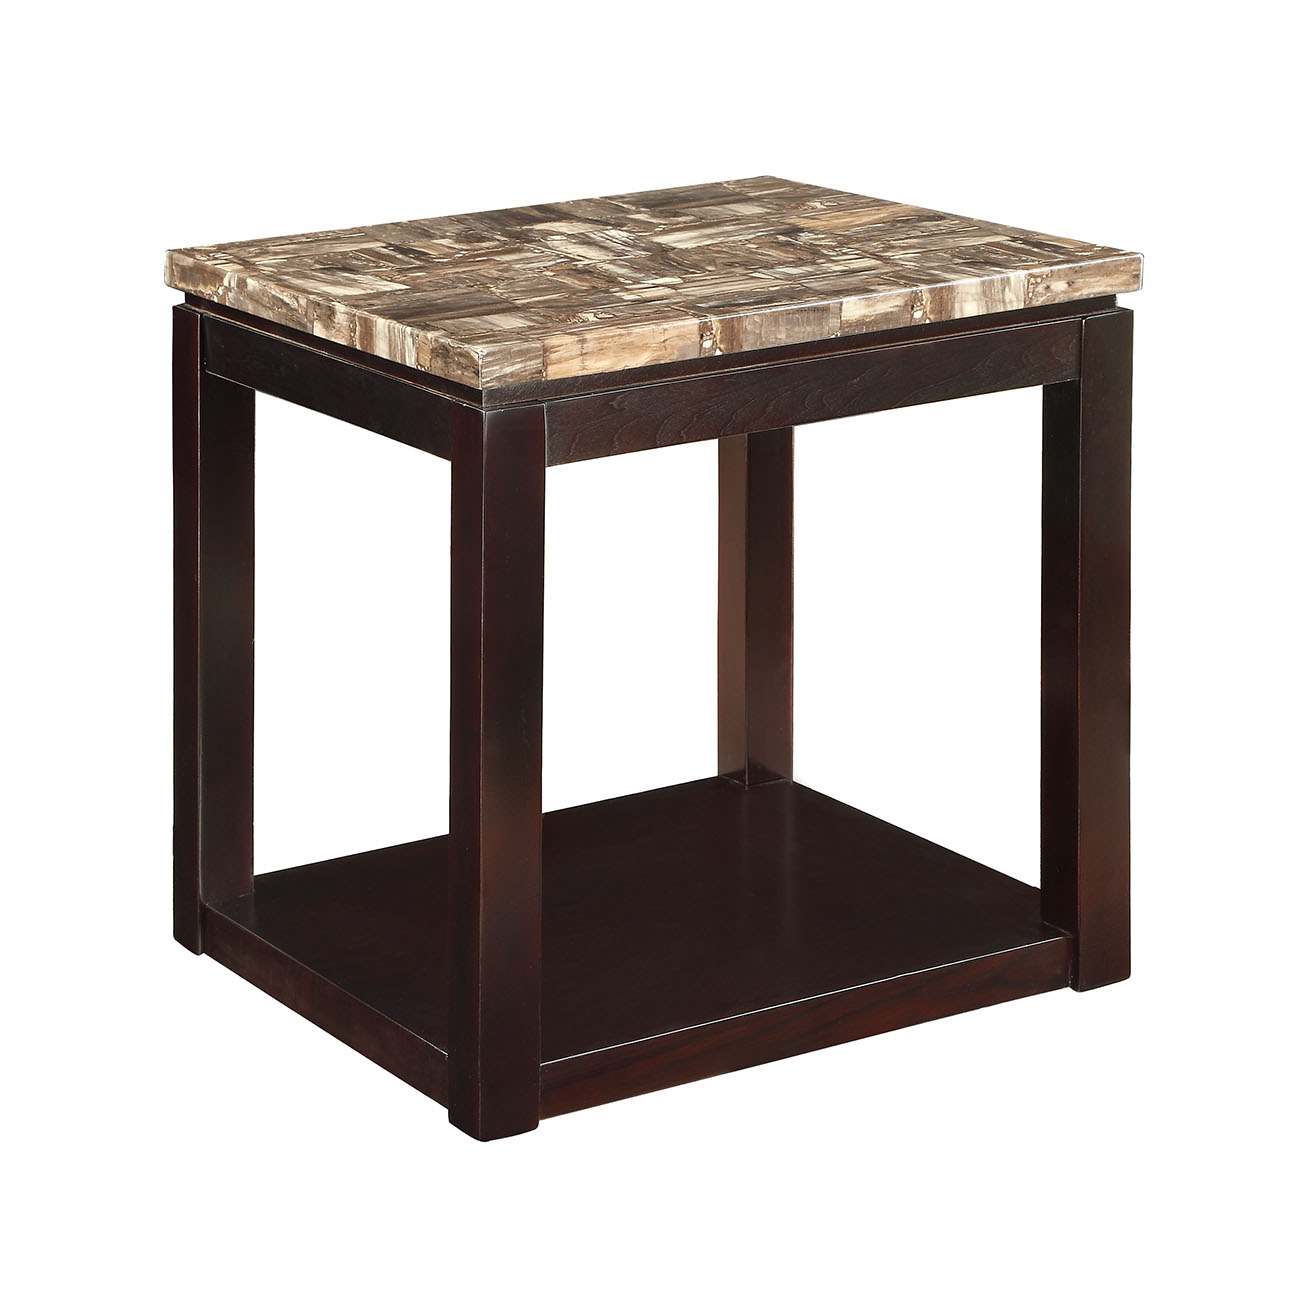 ACME Dusty End Table, Faux Marble & Espresso